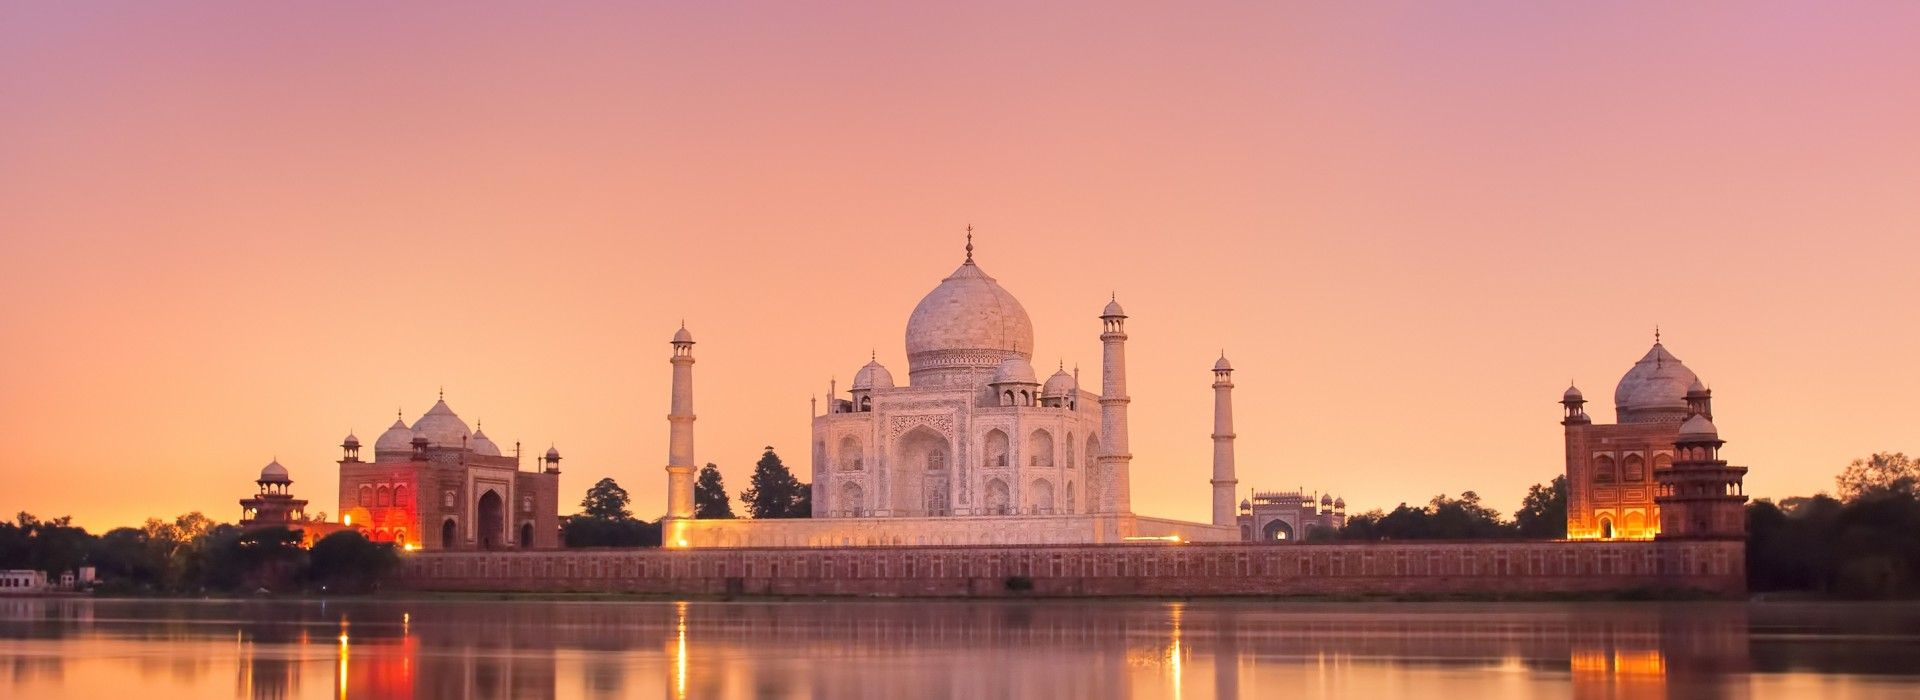 Sightseeing, attractions, culture and history Tours in Taj Mahal